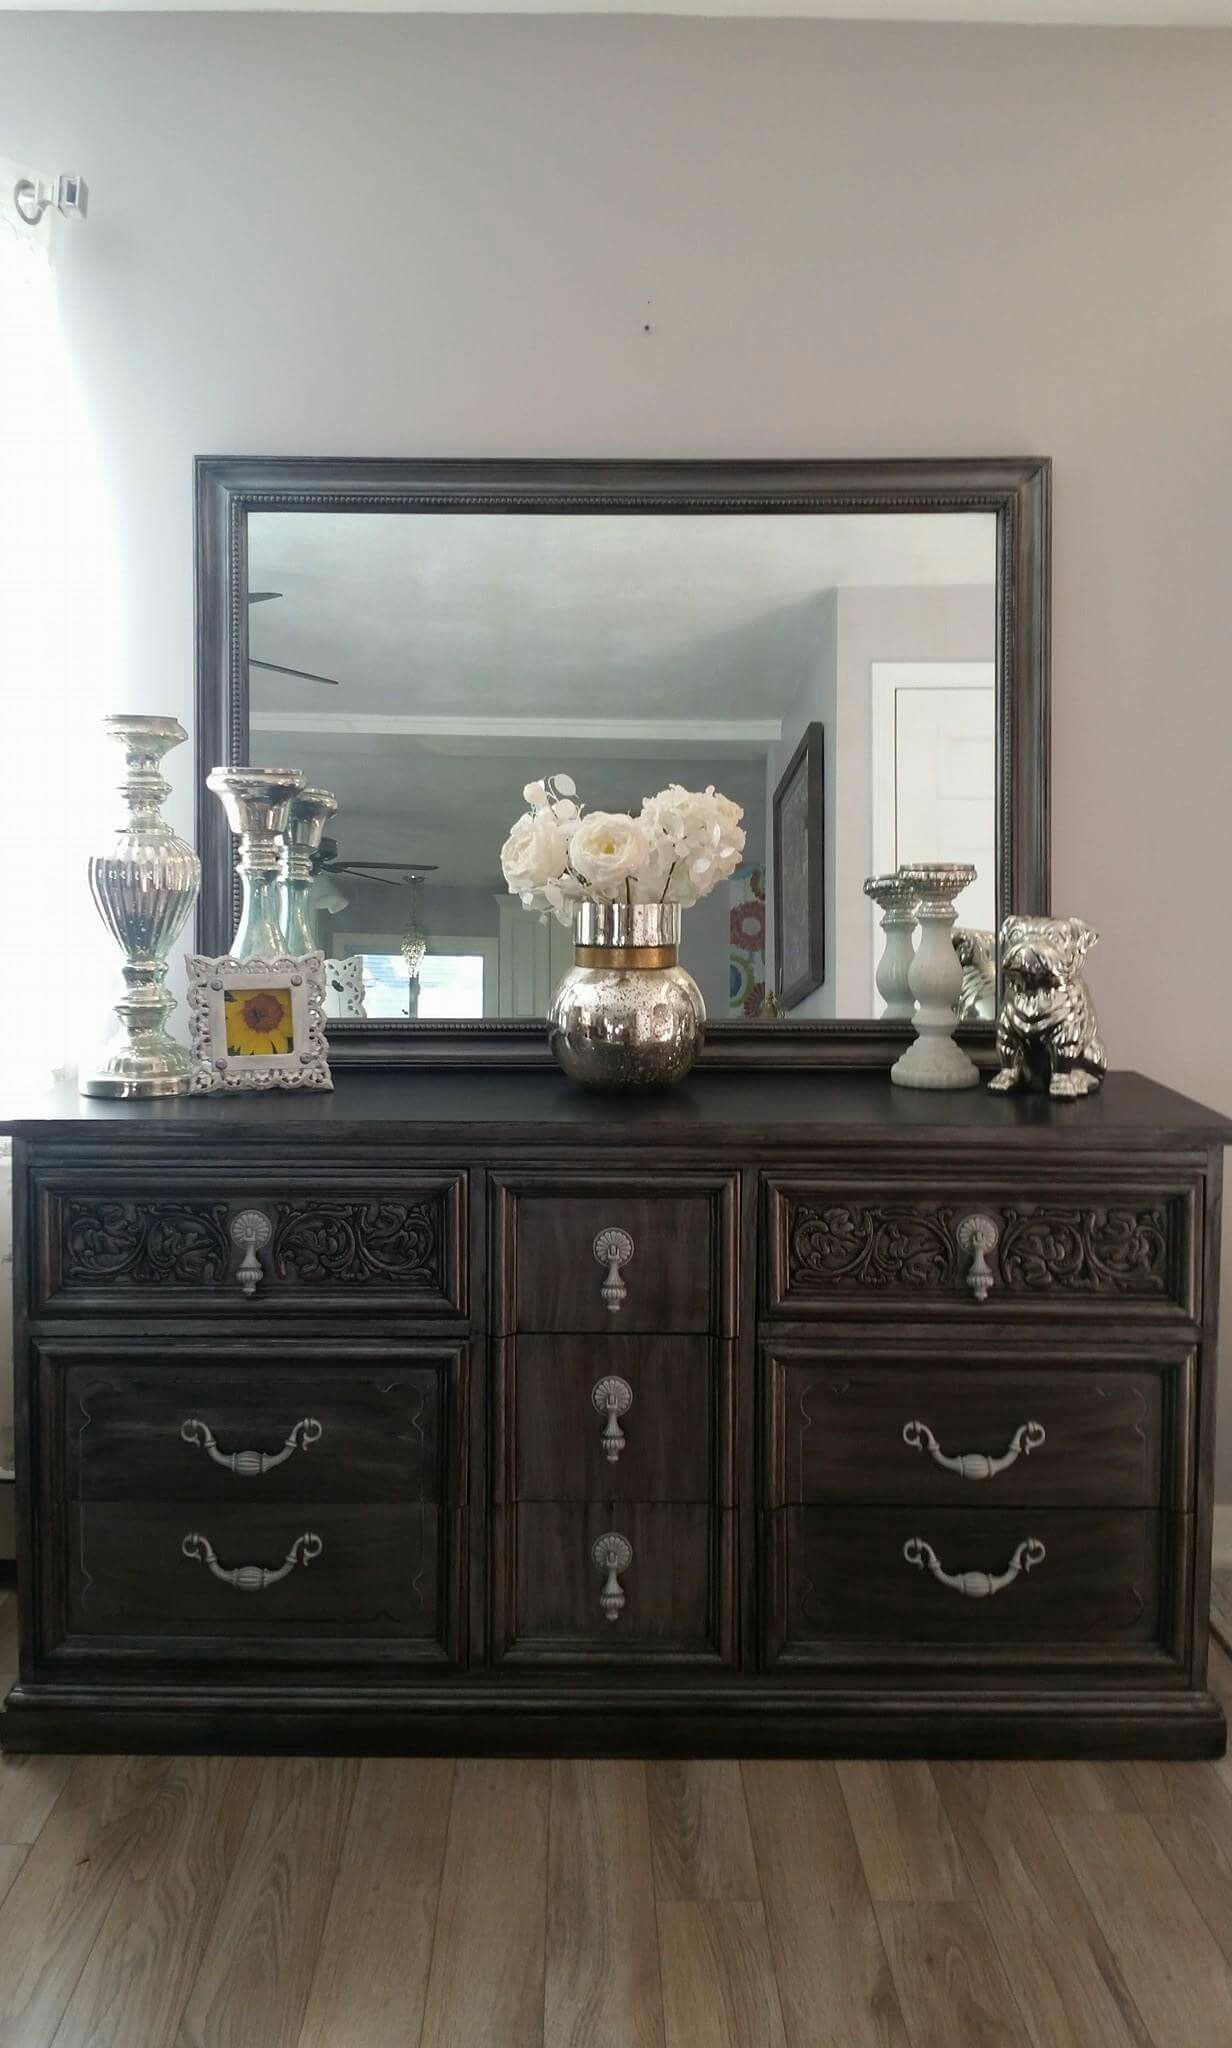 dixie vintage 6 drawer dresser repurposed painted in silver metallic and black glaze